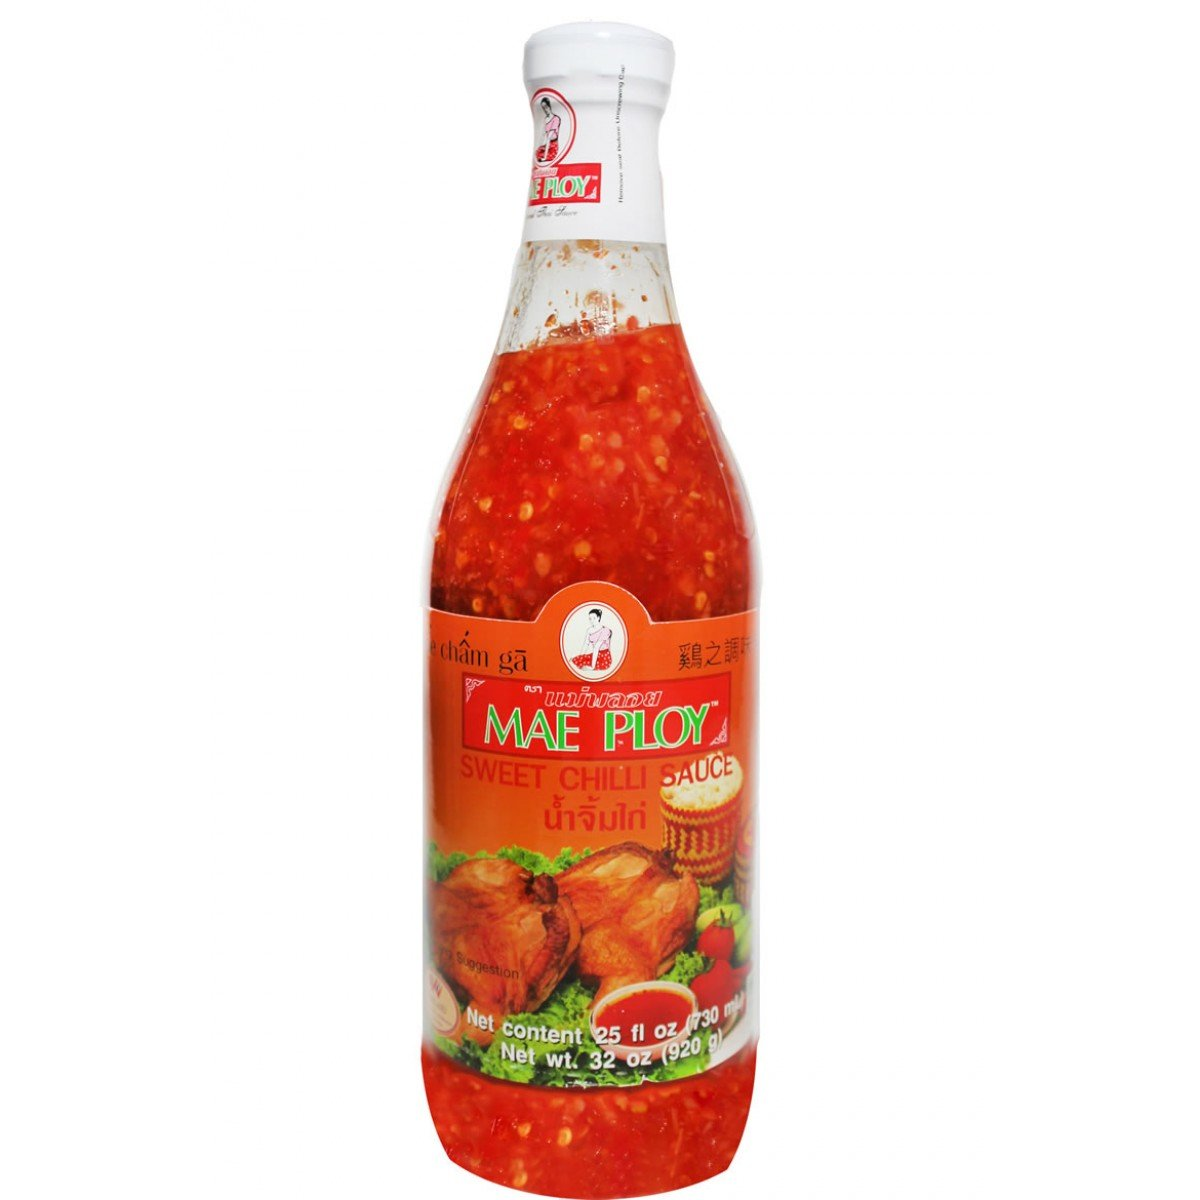 Mae Ploy Sweet Chilli Sauce, 25 ounce